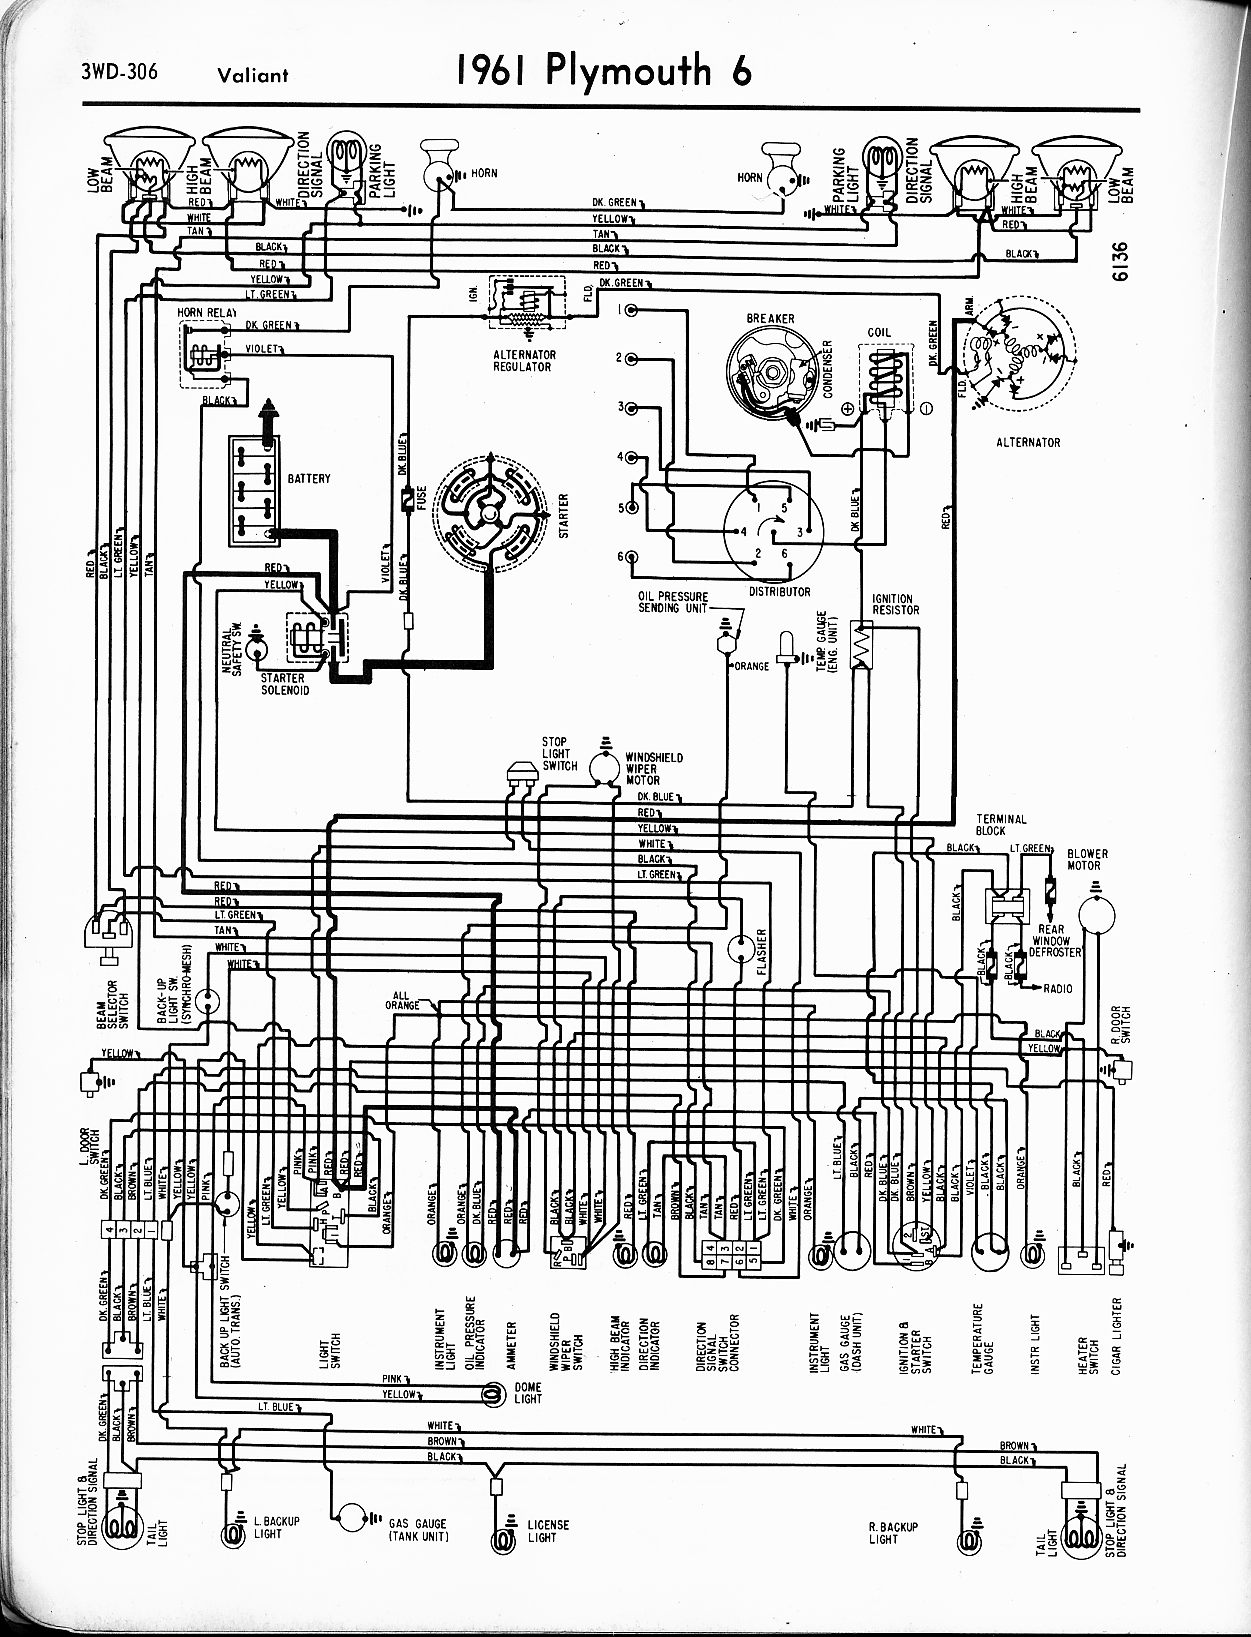 1949 plymouth cambridge wiring diagram on 1950 plymouth wiring diagram,  1937 plymouth wiring diagram,